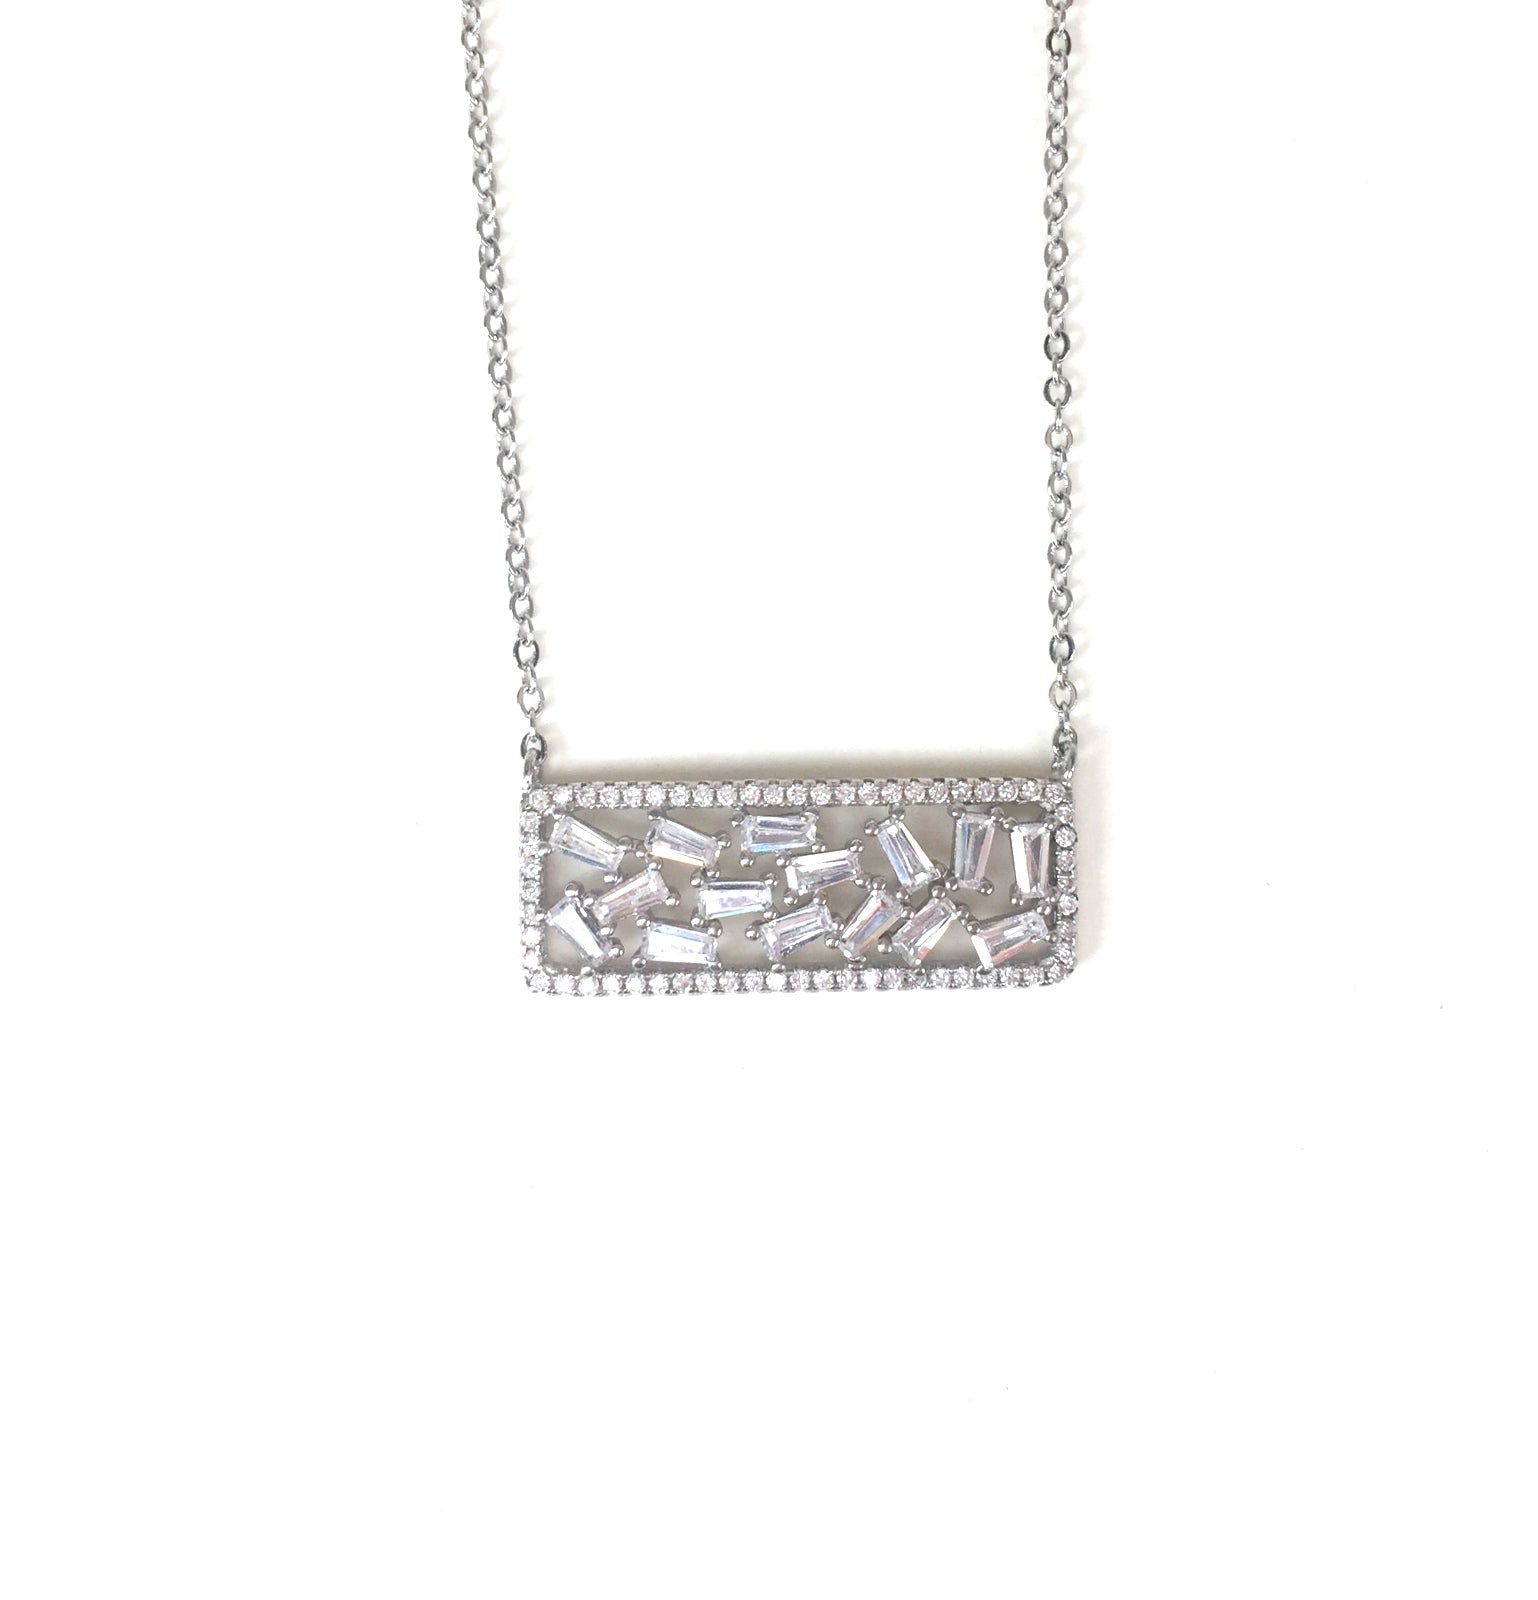 SPARKLING HORIZONTAL DECORATED BAR PAVE CZ STERLING SILVER NECKLACE